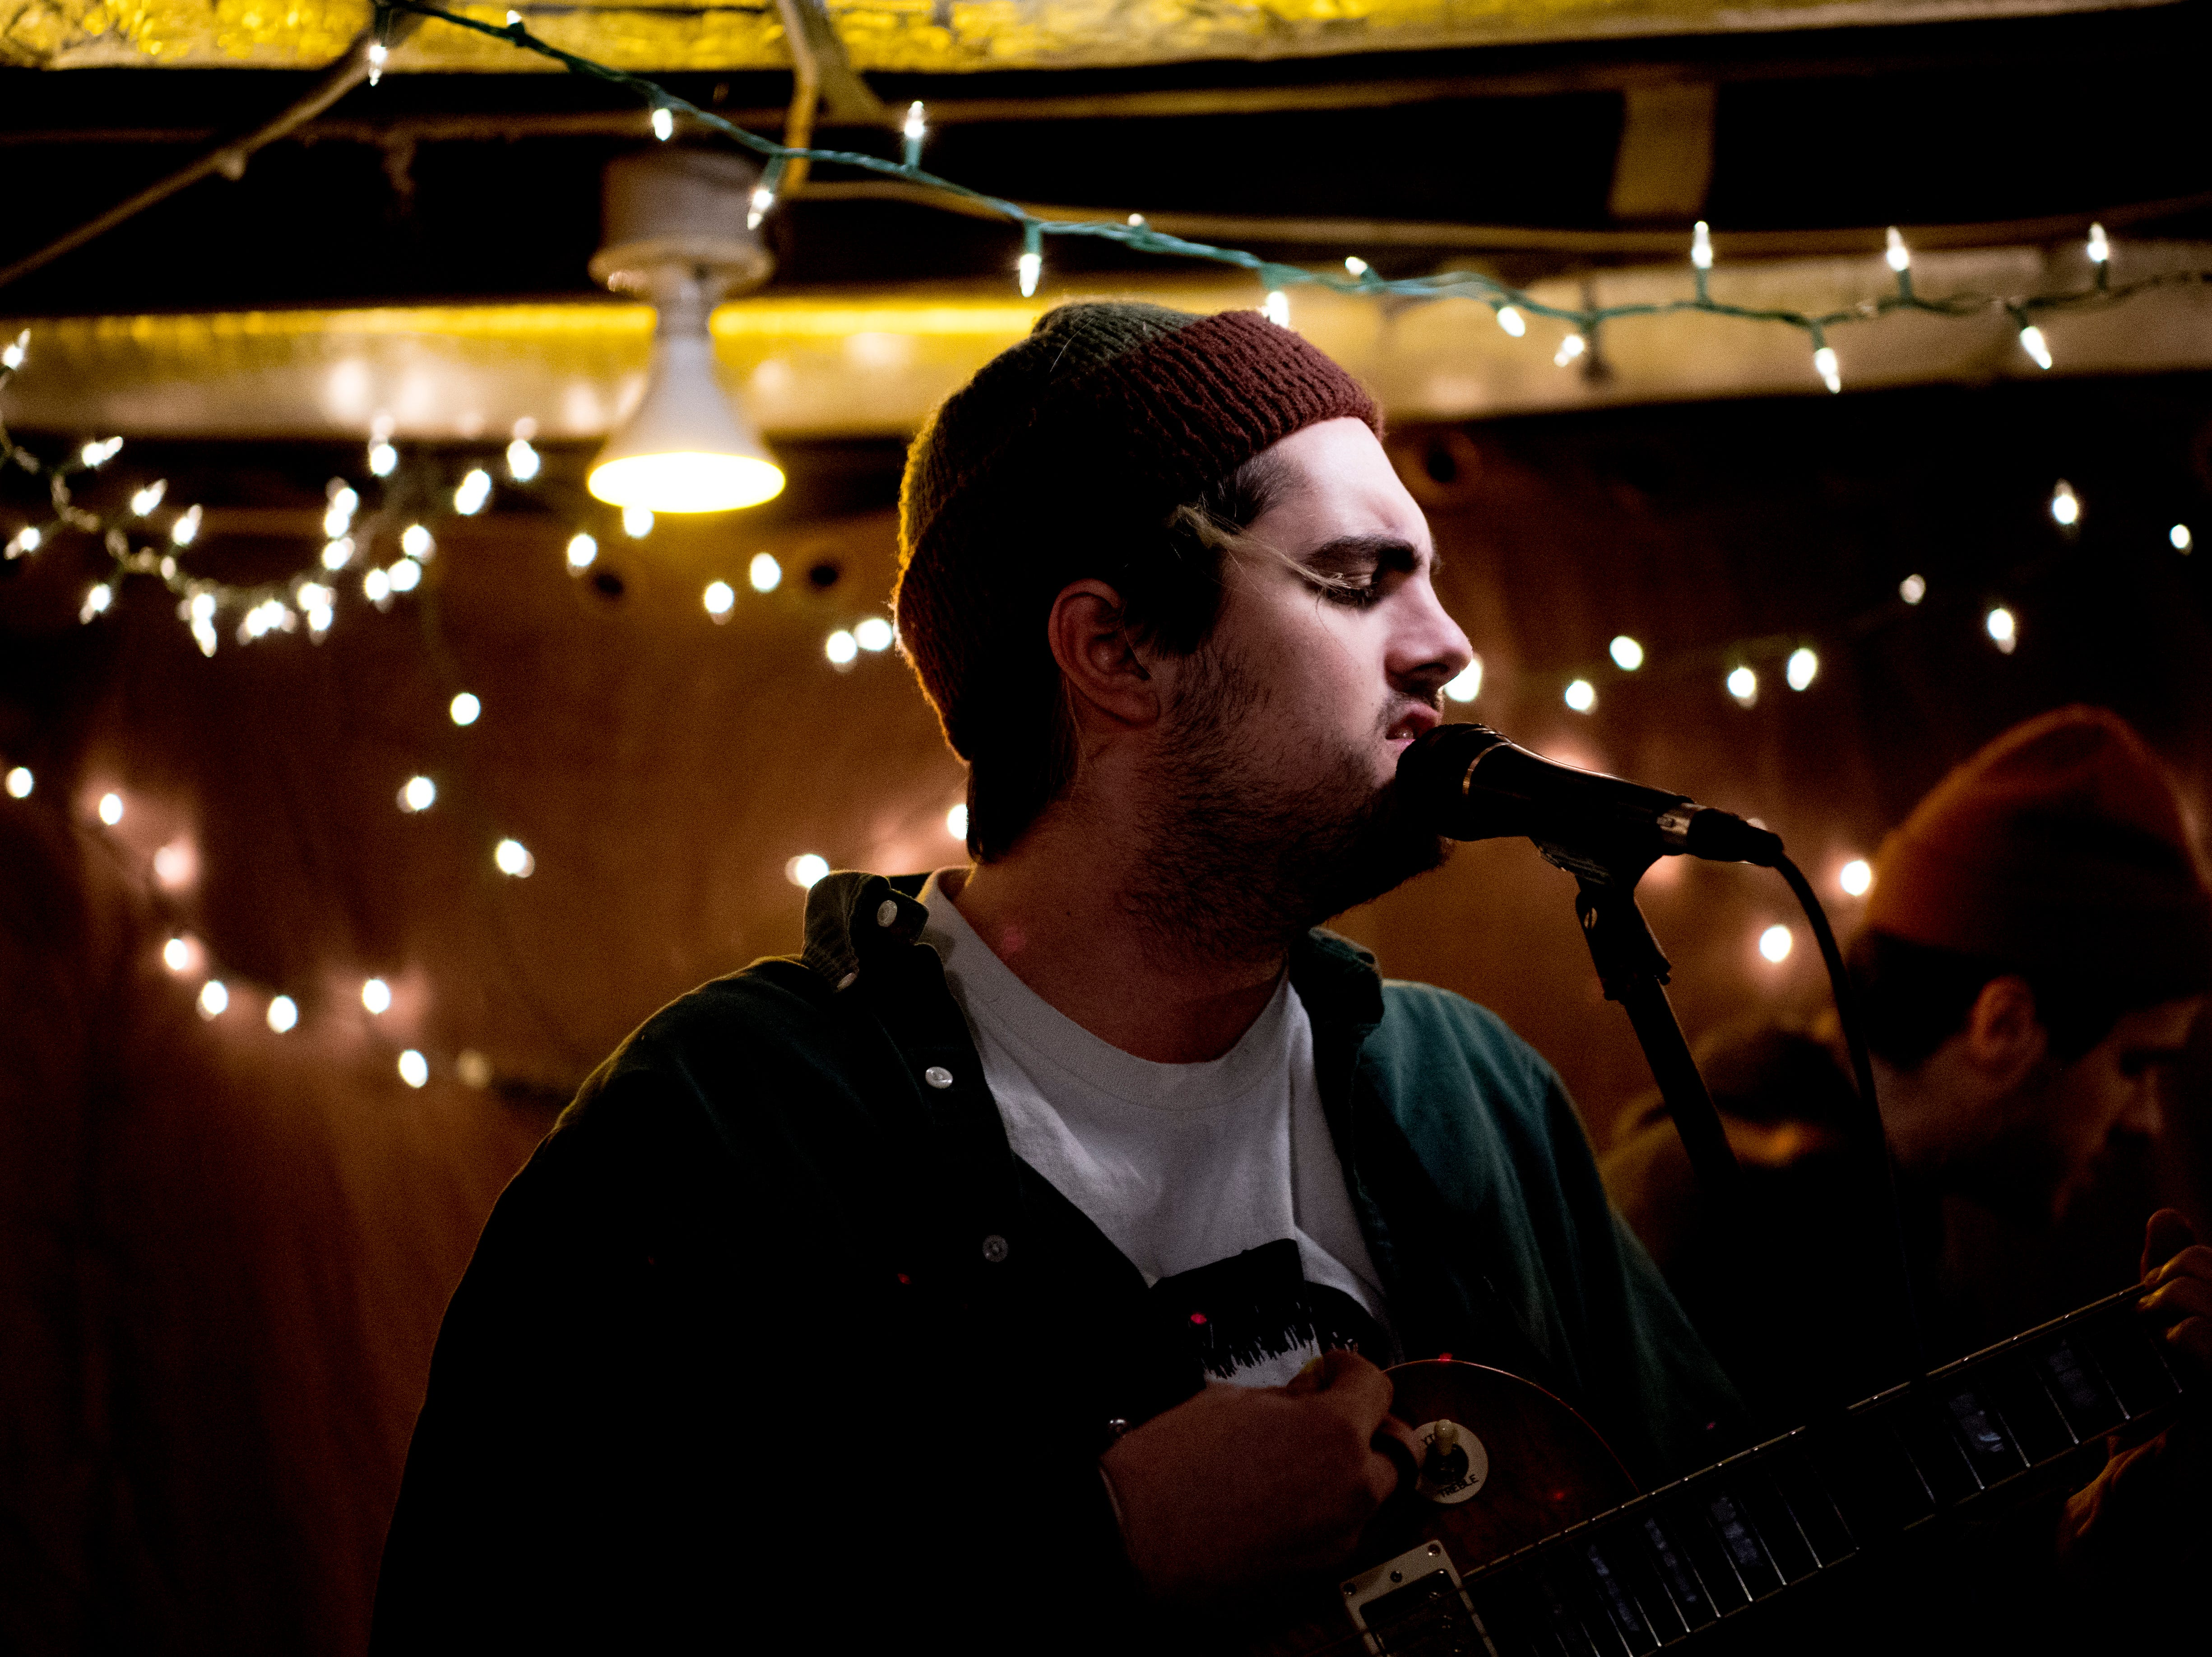 Tyler Clark performs with Tyler Cage and Aaron Cage at The Basement at 1706 Highland Ave. in Knoxville, Tennessee on Wednesday, January 30, 2019. The new venue is aiming to host local and national talent as well as arts and crafts.